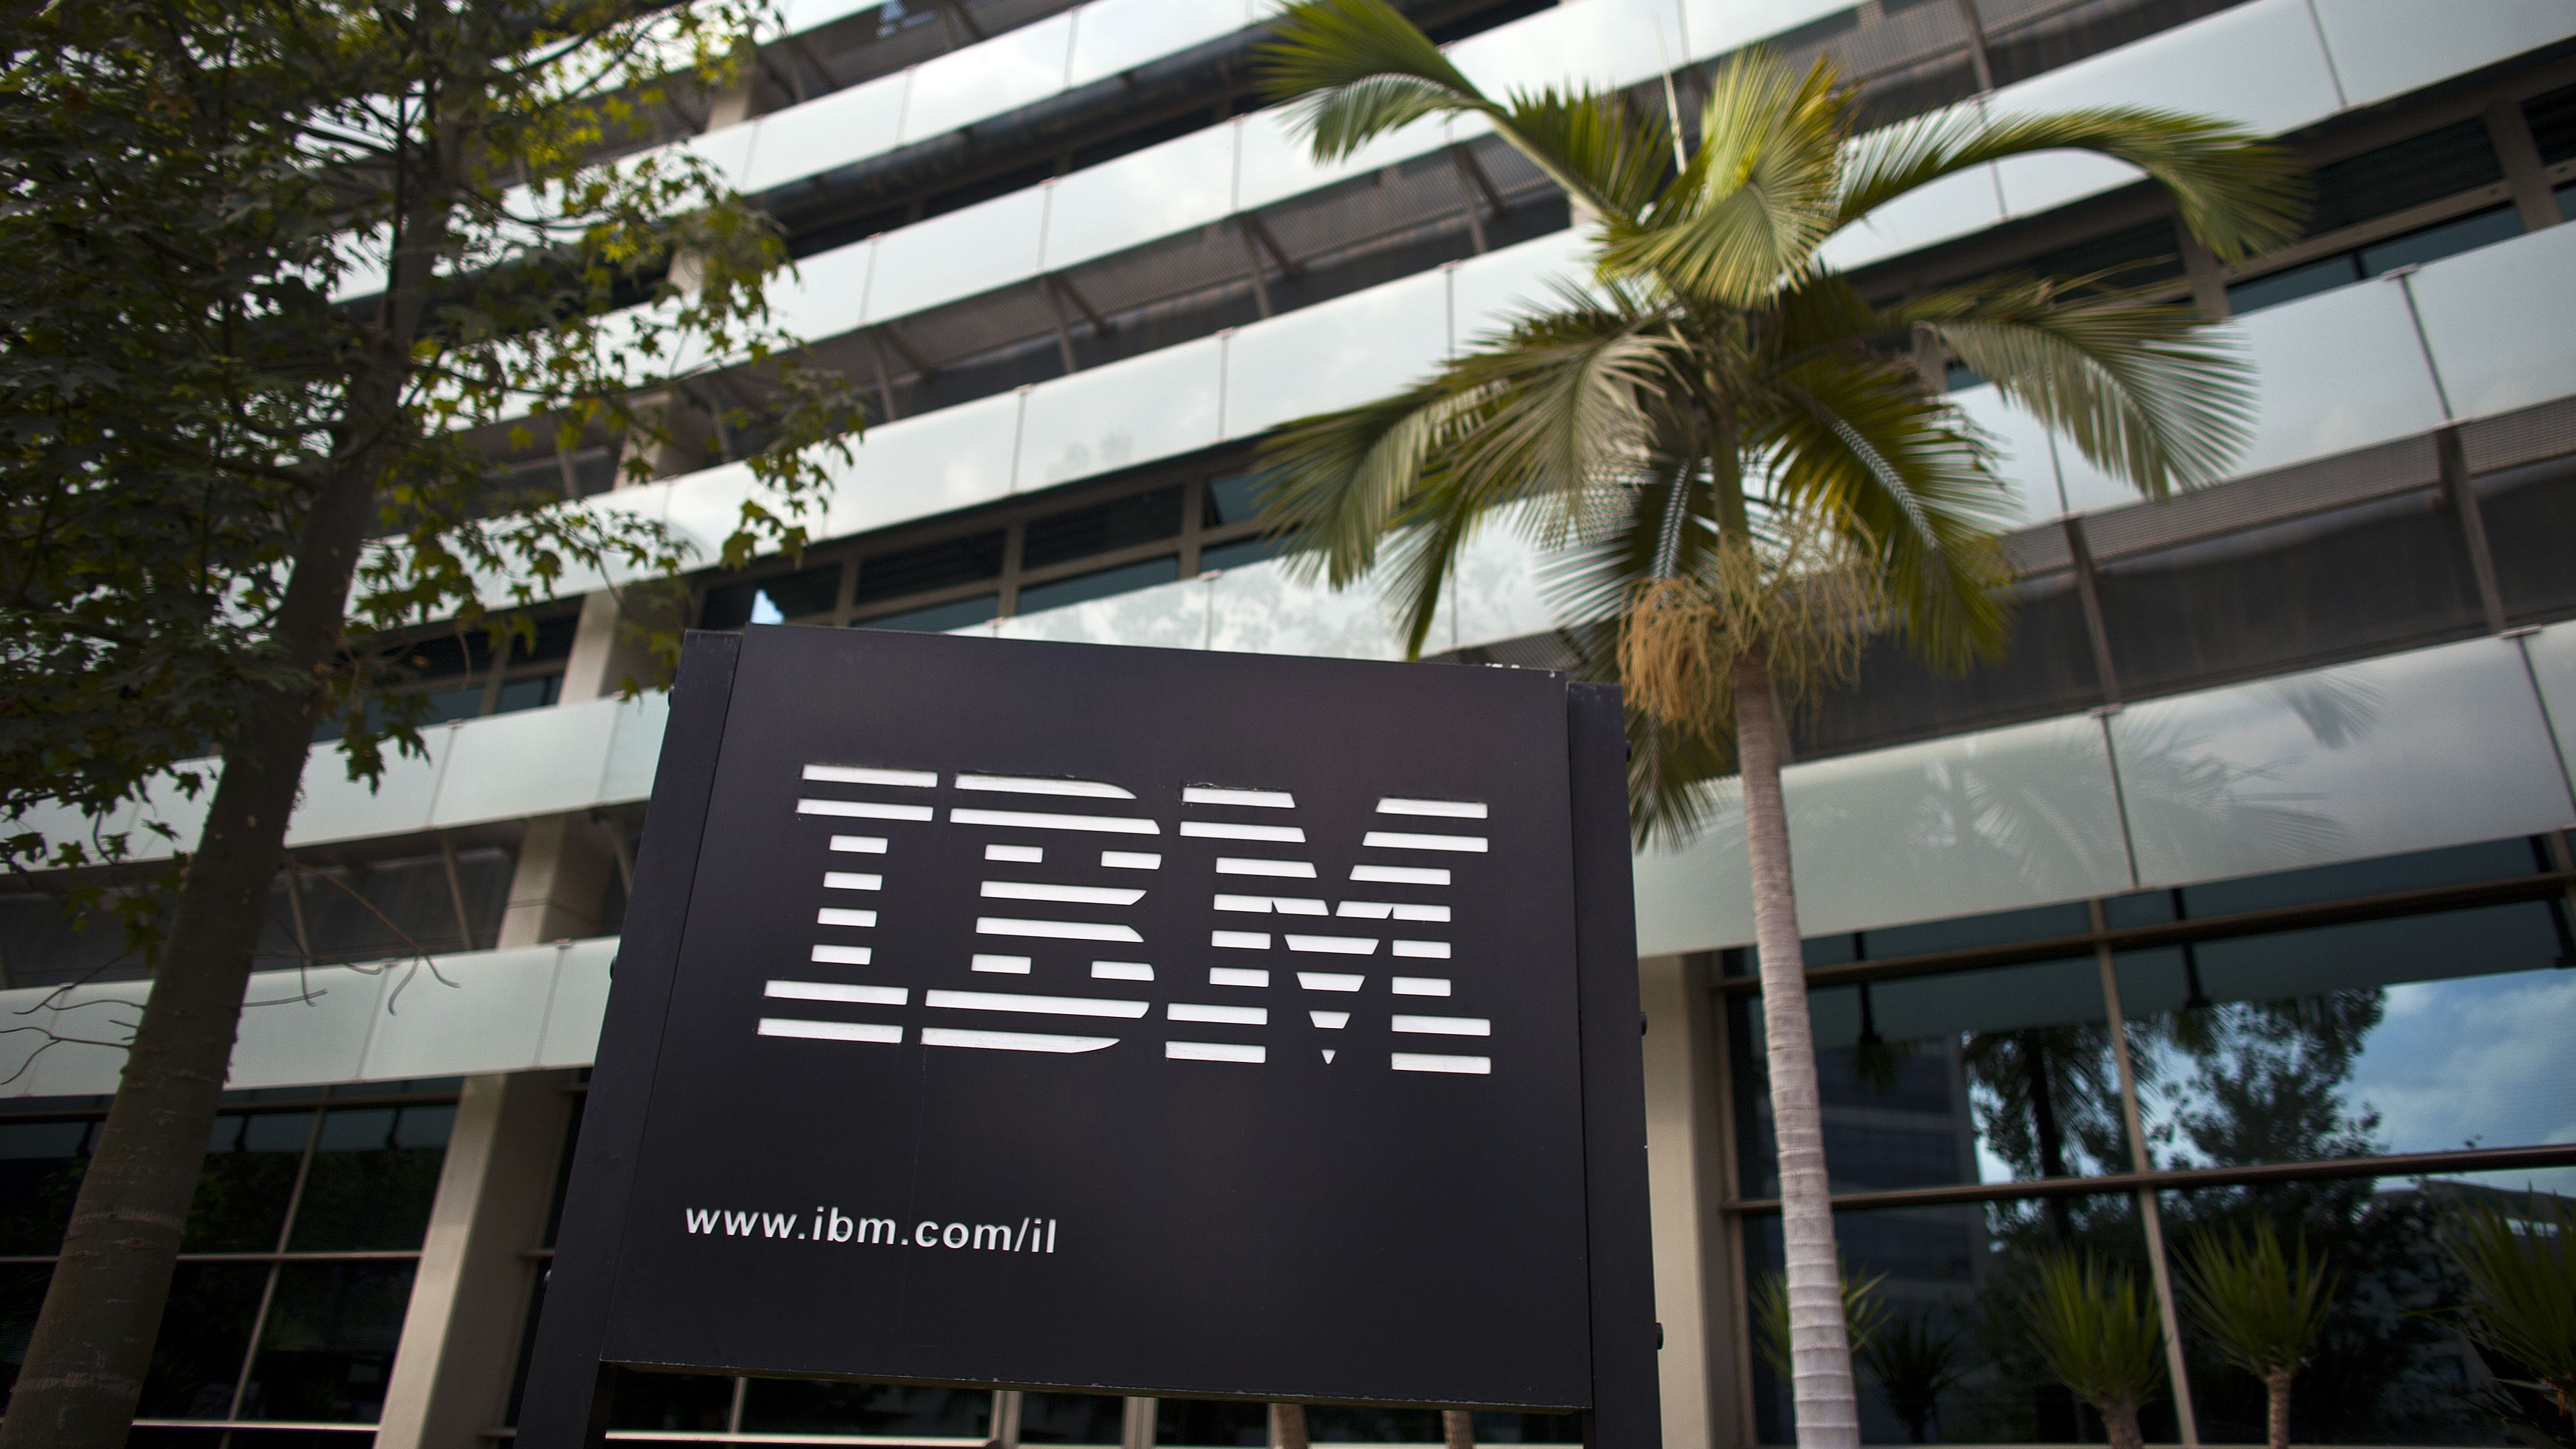 The IBM logo is seen outside the company's offices in Petah Tikva, near Tel Aviv October 24, 2011. REUTERS/Nir Elias (ISRAEL - Tags: BUSINESS SCIENCE TECHNOLOGY LOGO)